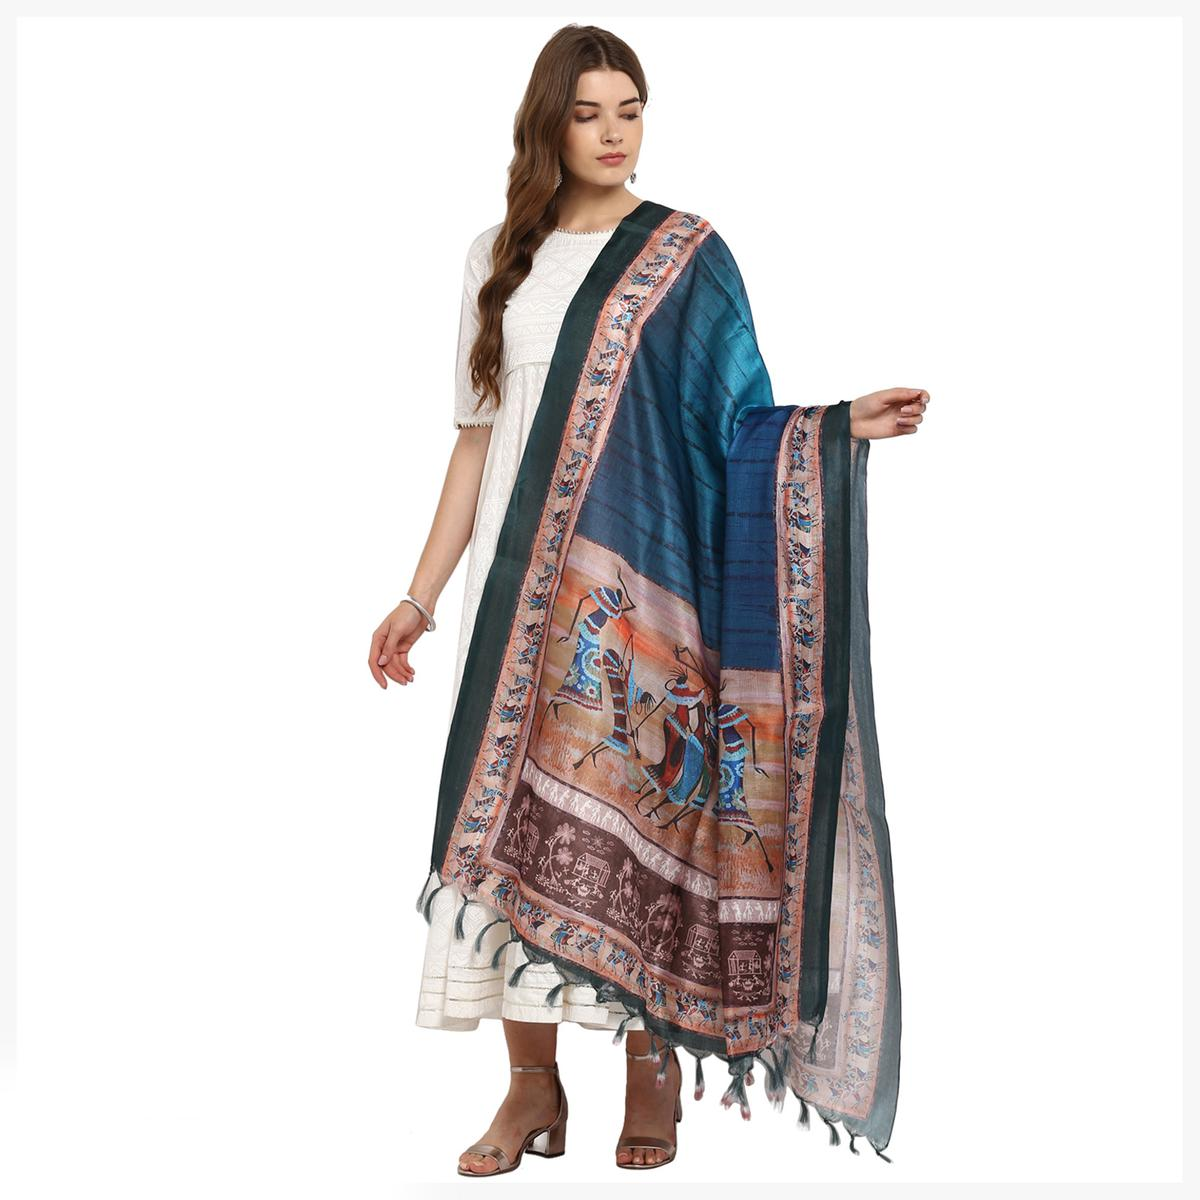 Entrancing Shaded Blue-Brown Colored Digital Printed Khadi Silk Dupatta